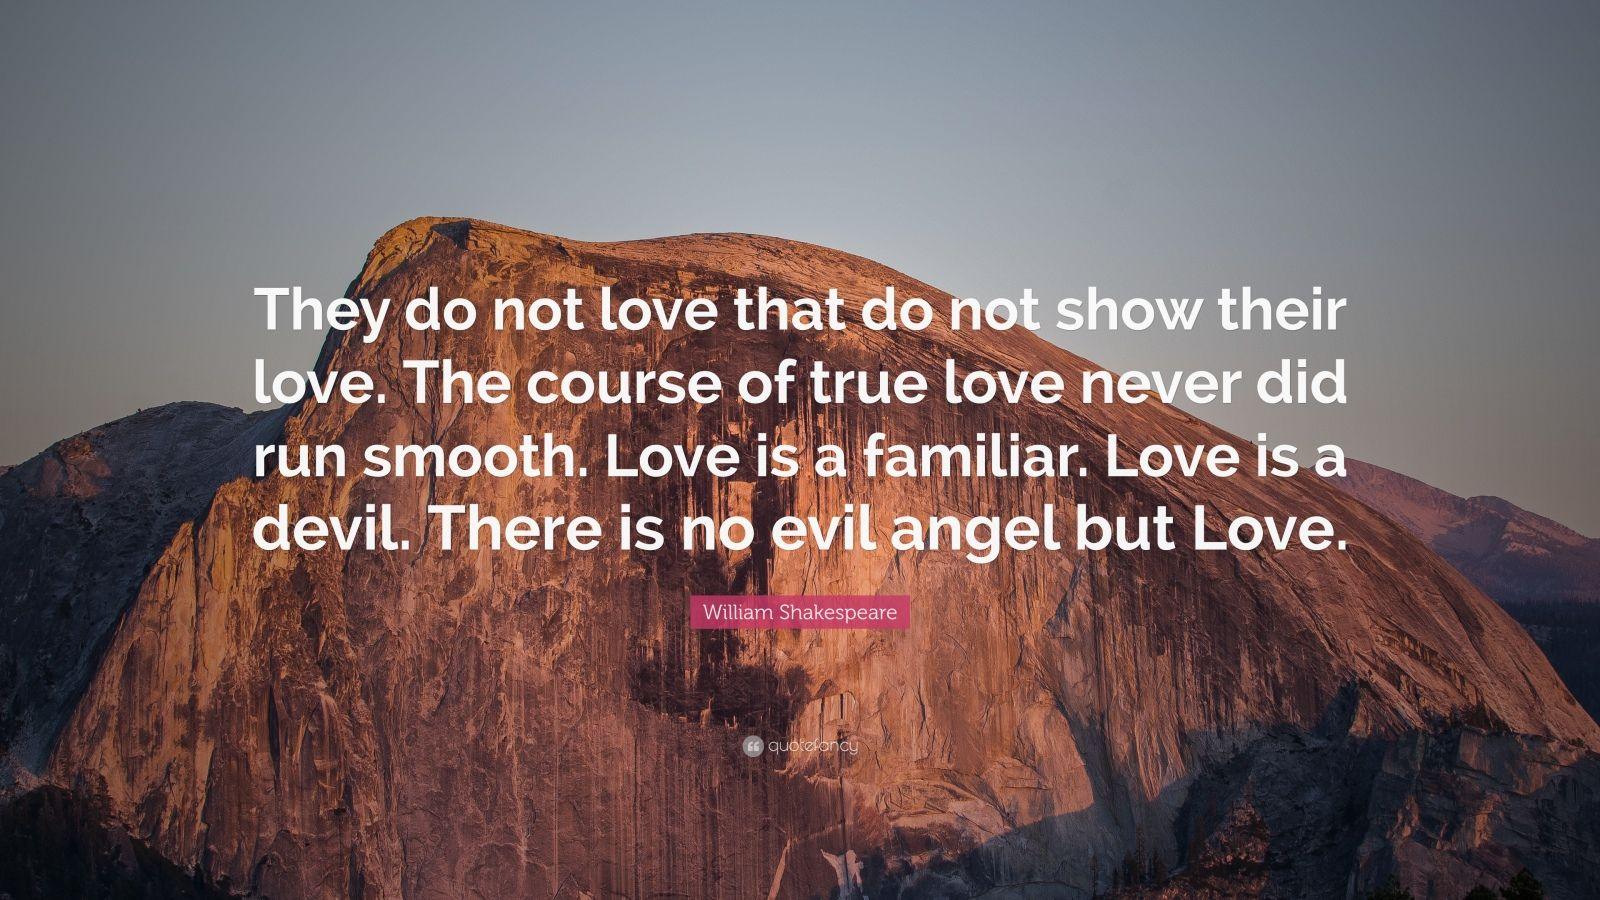 the course of true love never The course of true love never did run smooth there will always be problems in a romantic relationship see also true love retrieved from https.